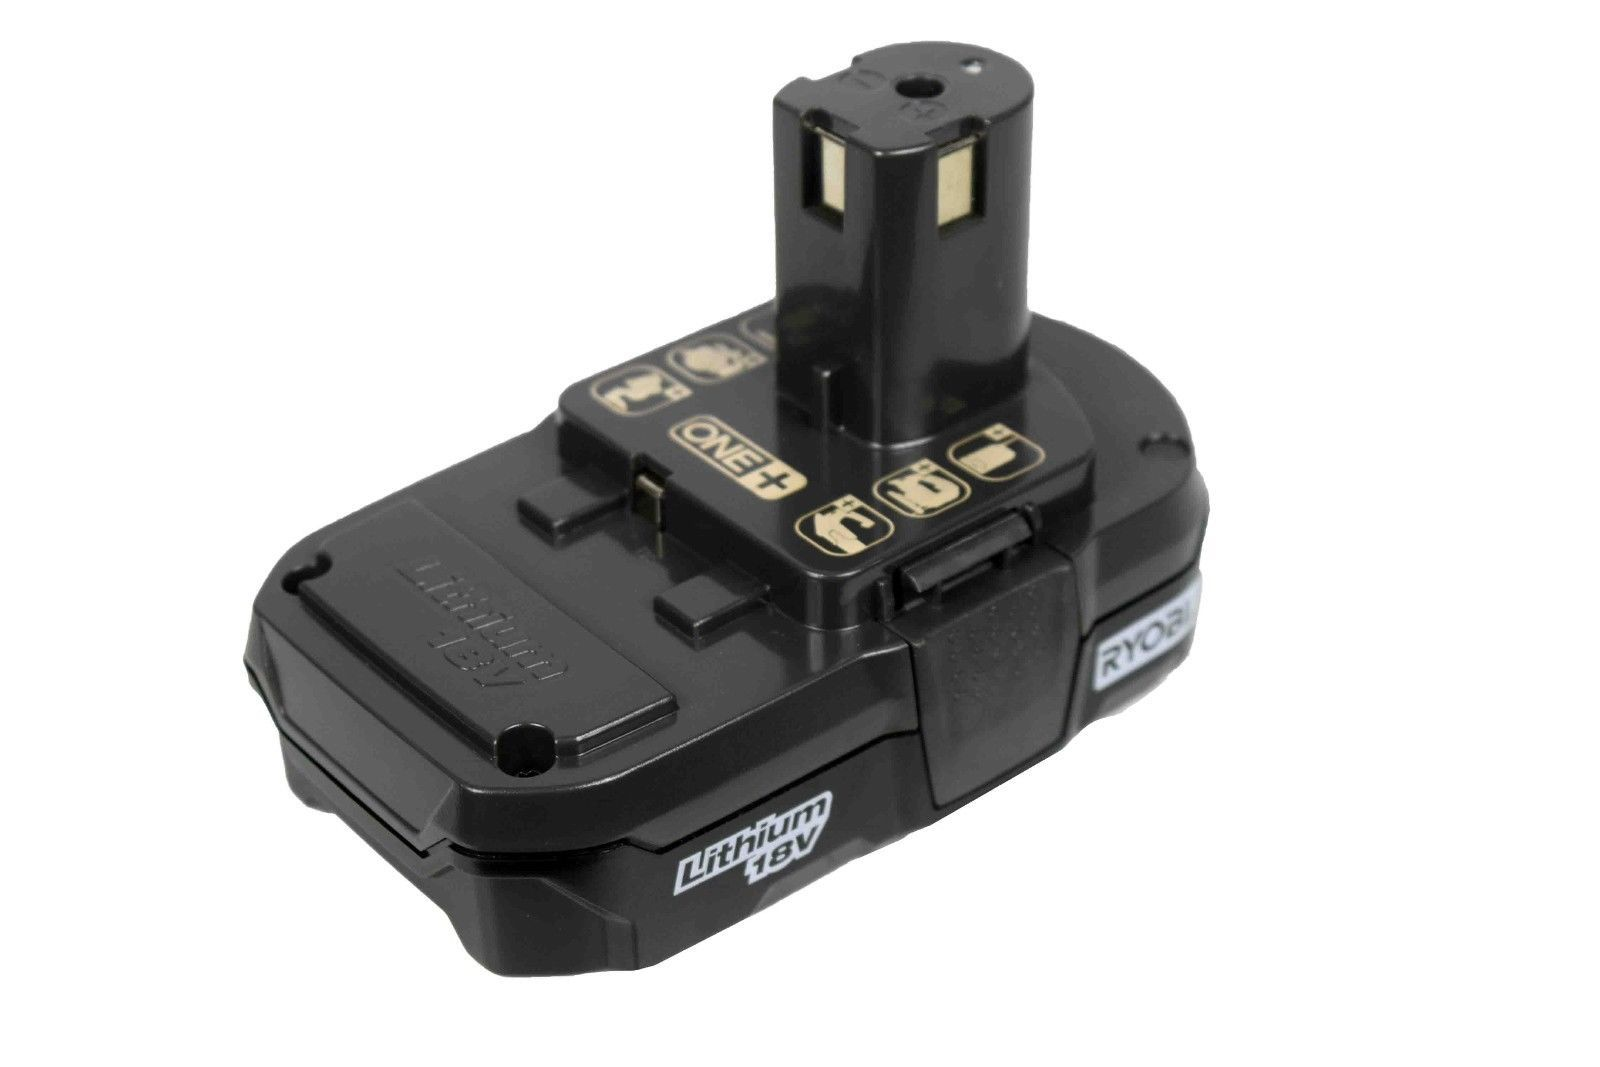 Ryobi-One-P102-18V-Lithium-Ion-Battery-Two-Pack-image-7